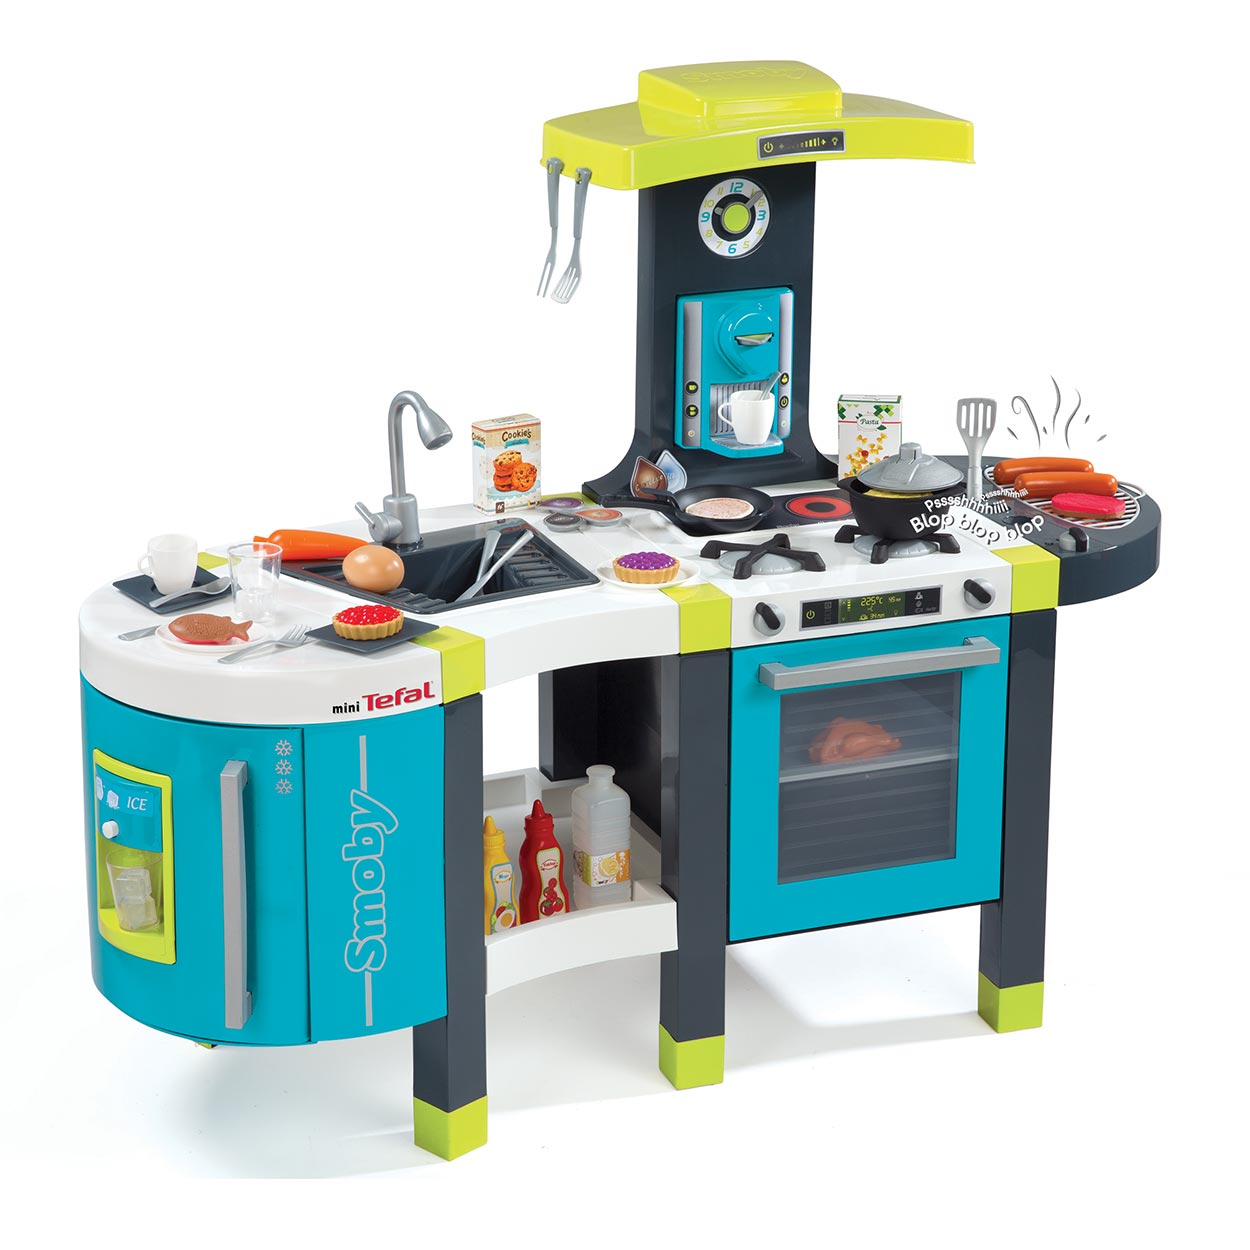 Smoby tefal french touch keuken online kopen - Cuisine tefal french touch ...